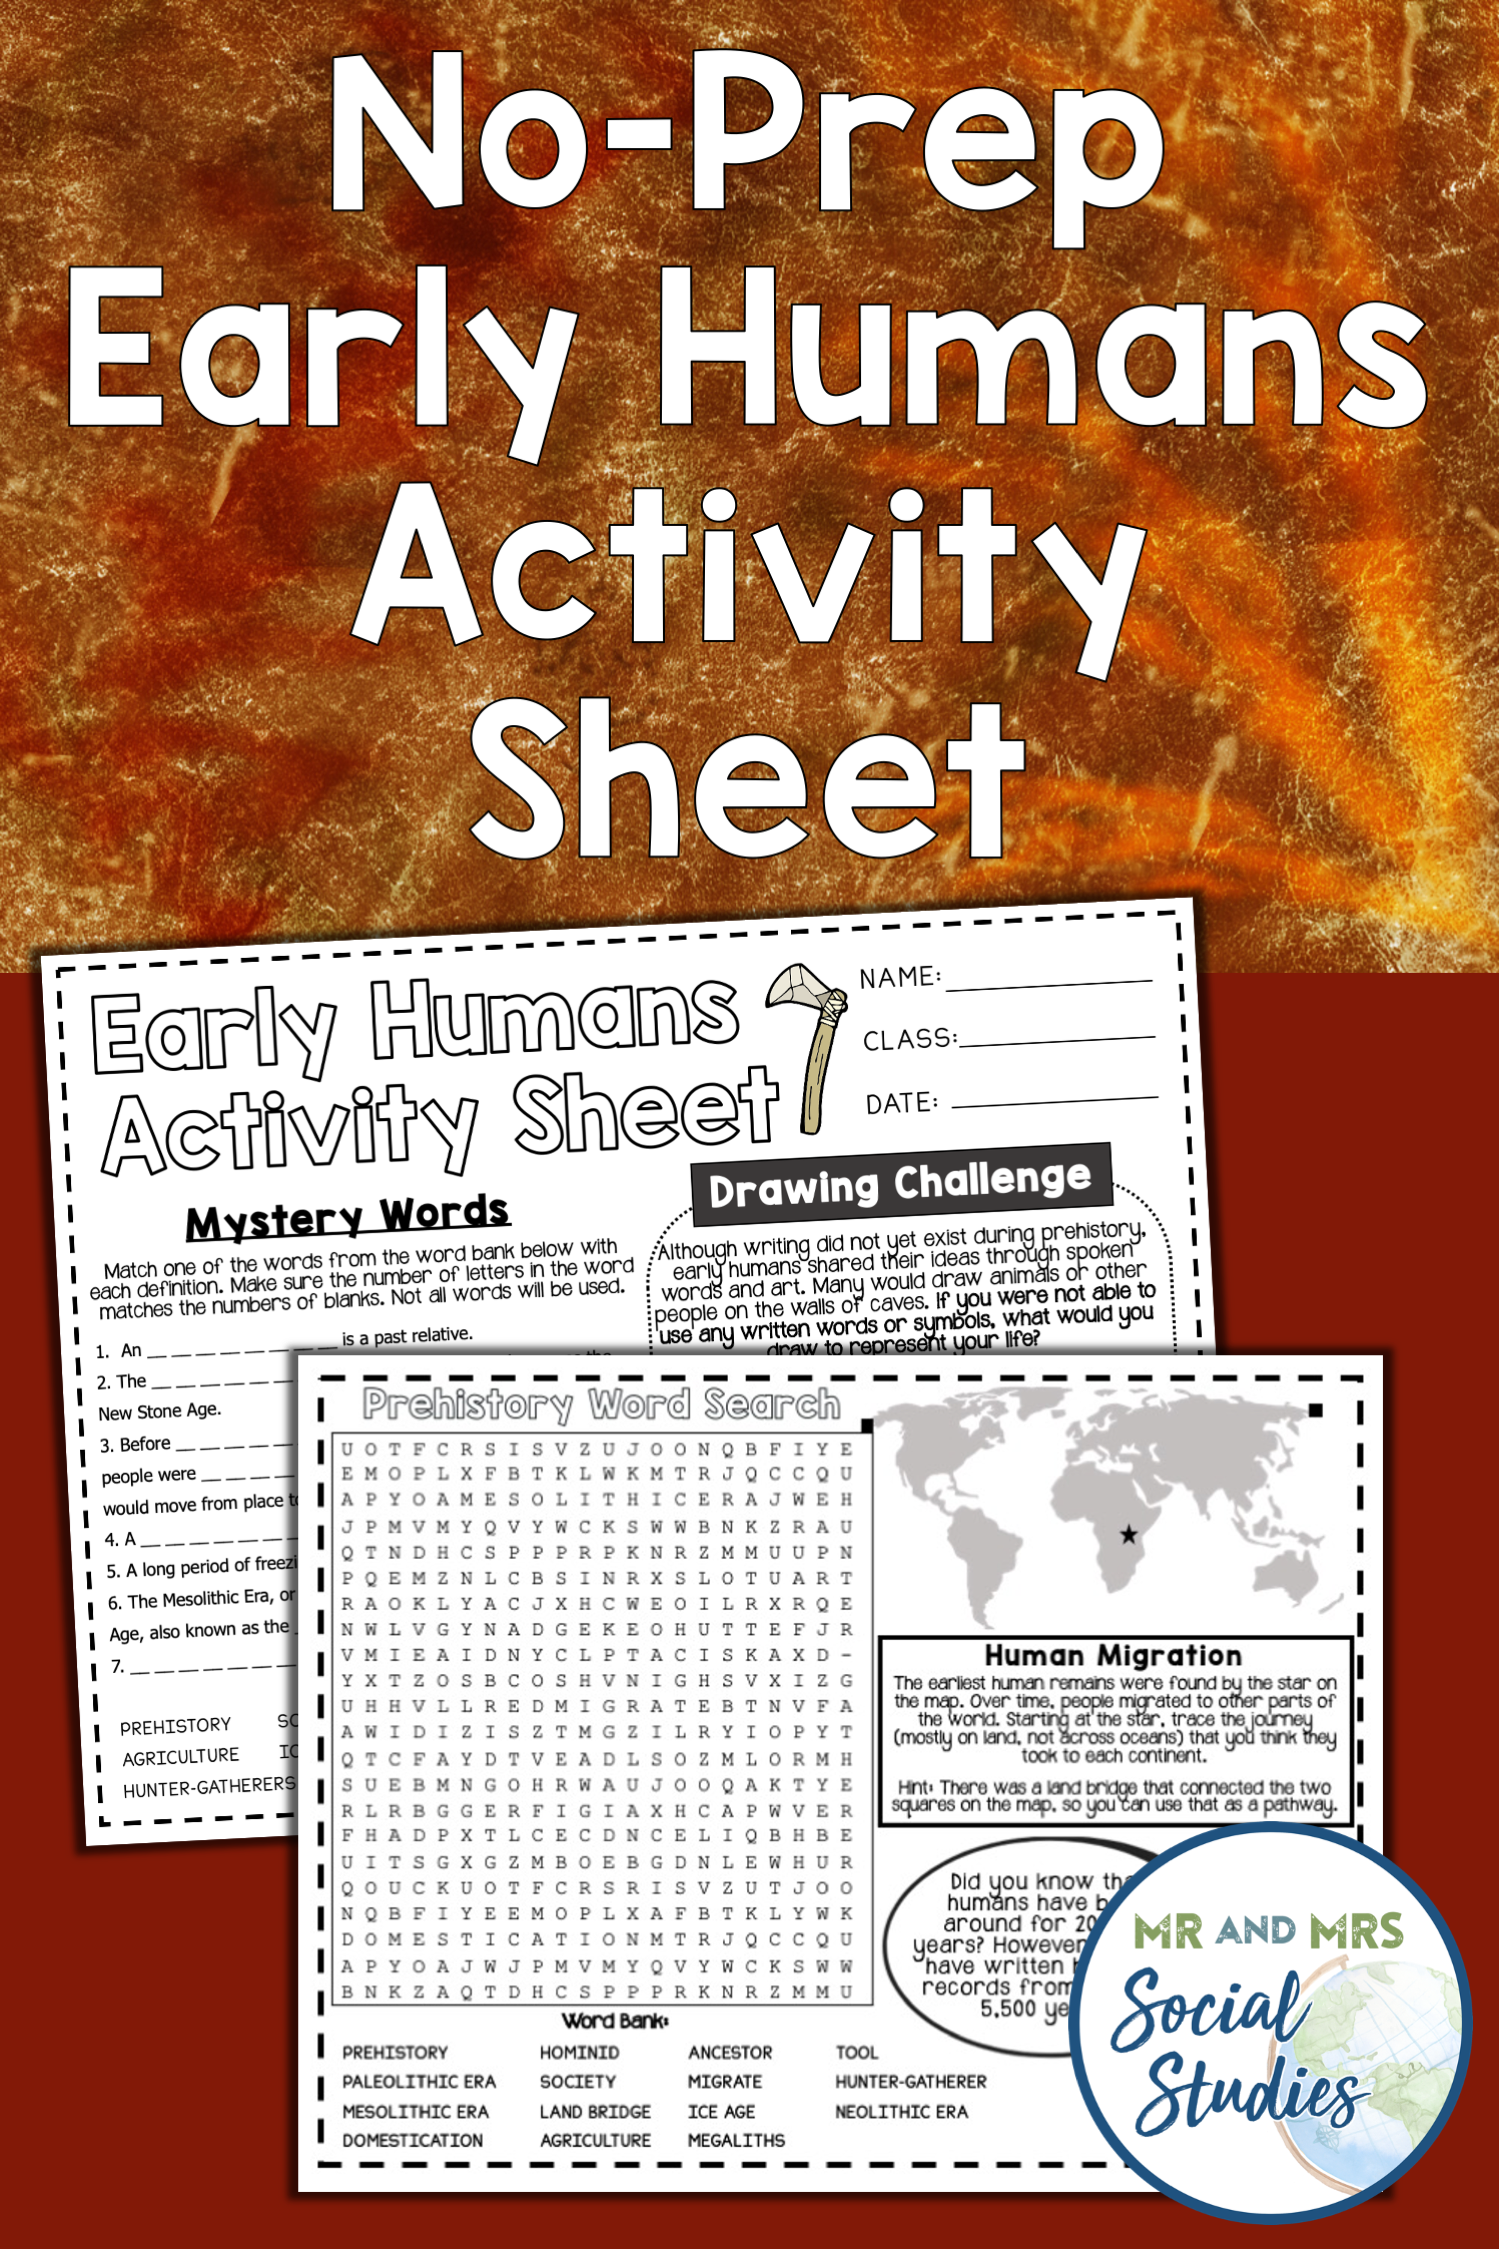 Early Humans Activity Sheet For An Emergency Sub Plan Or